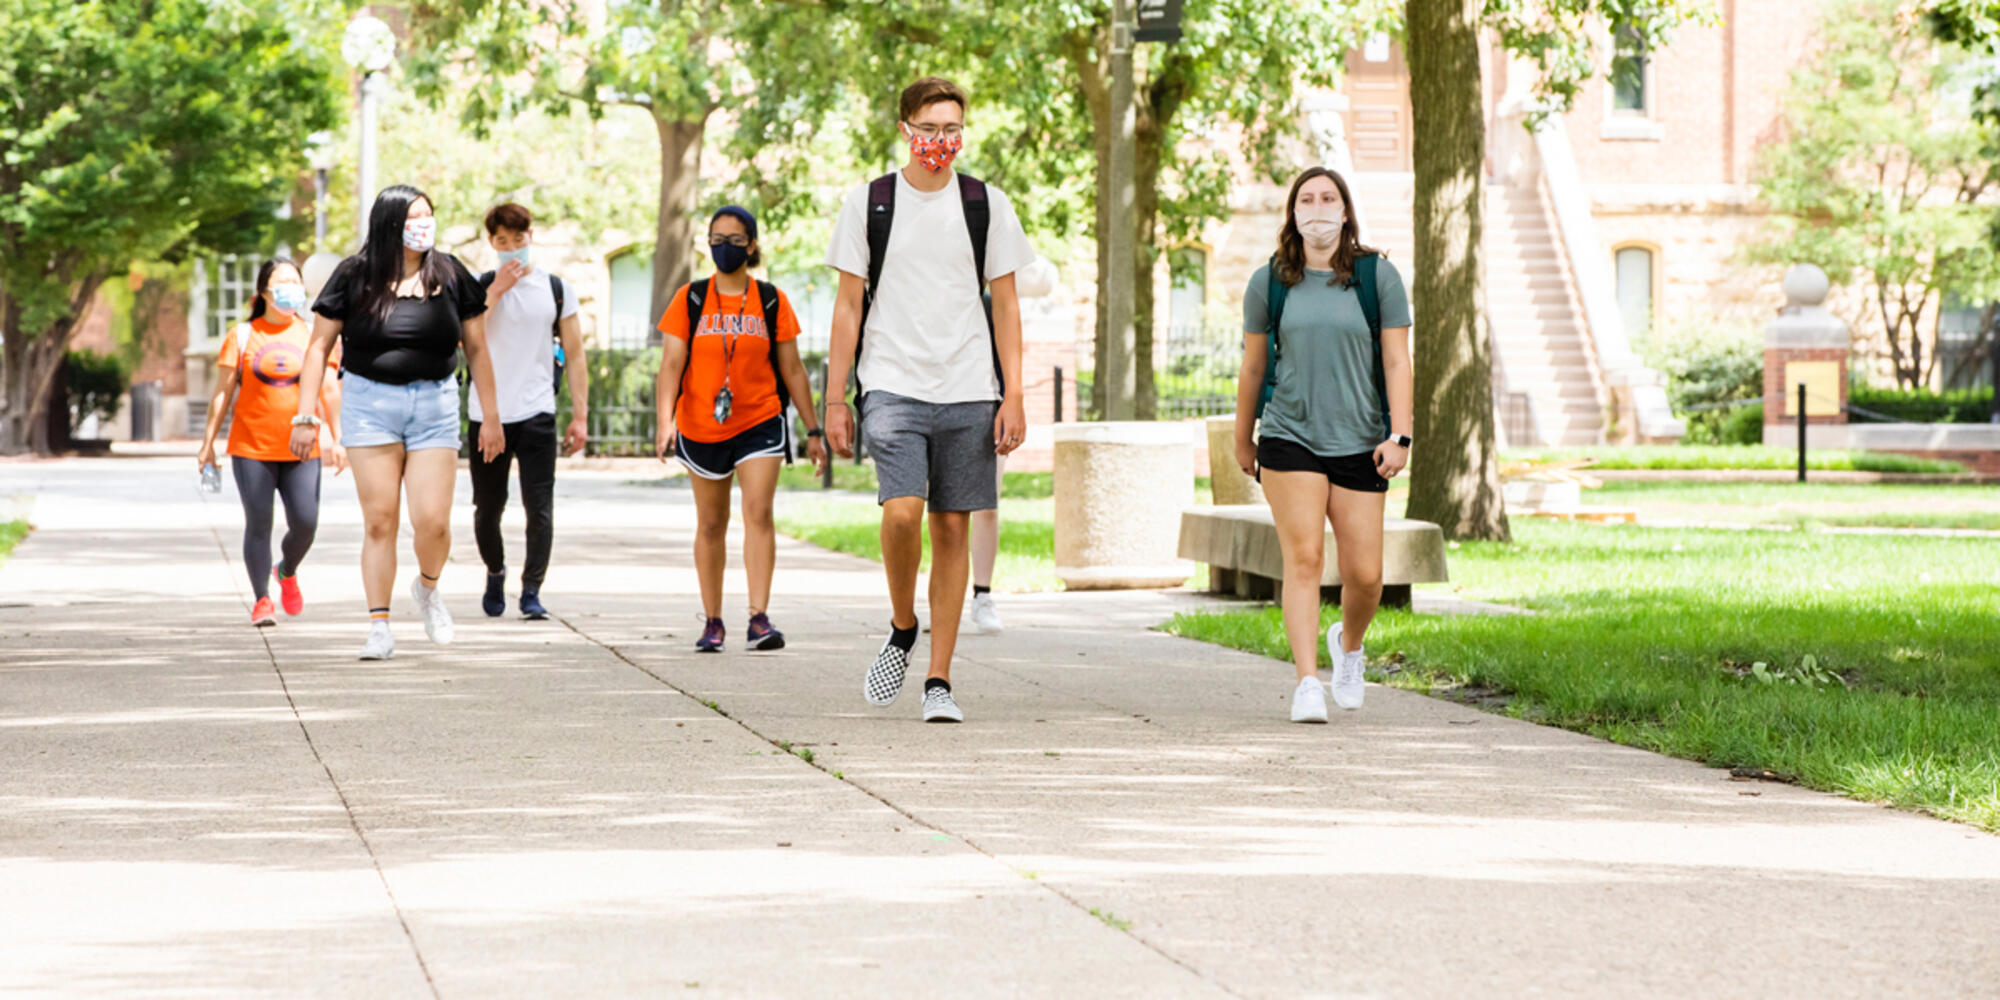 Students walking on campus wearing masks and social distancing